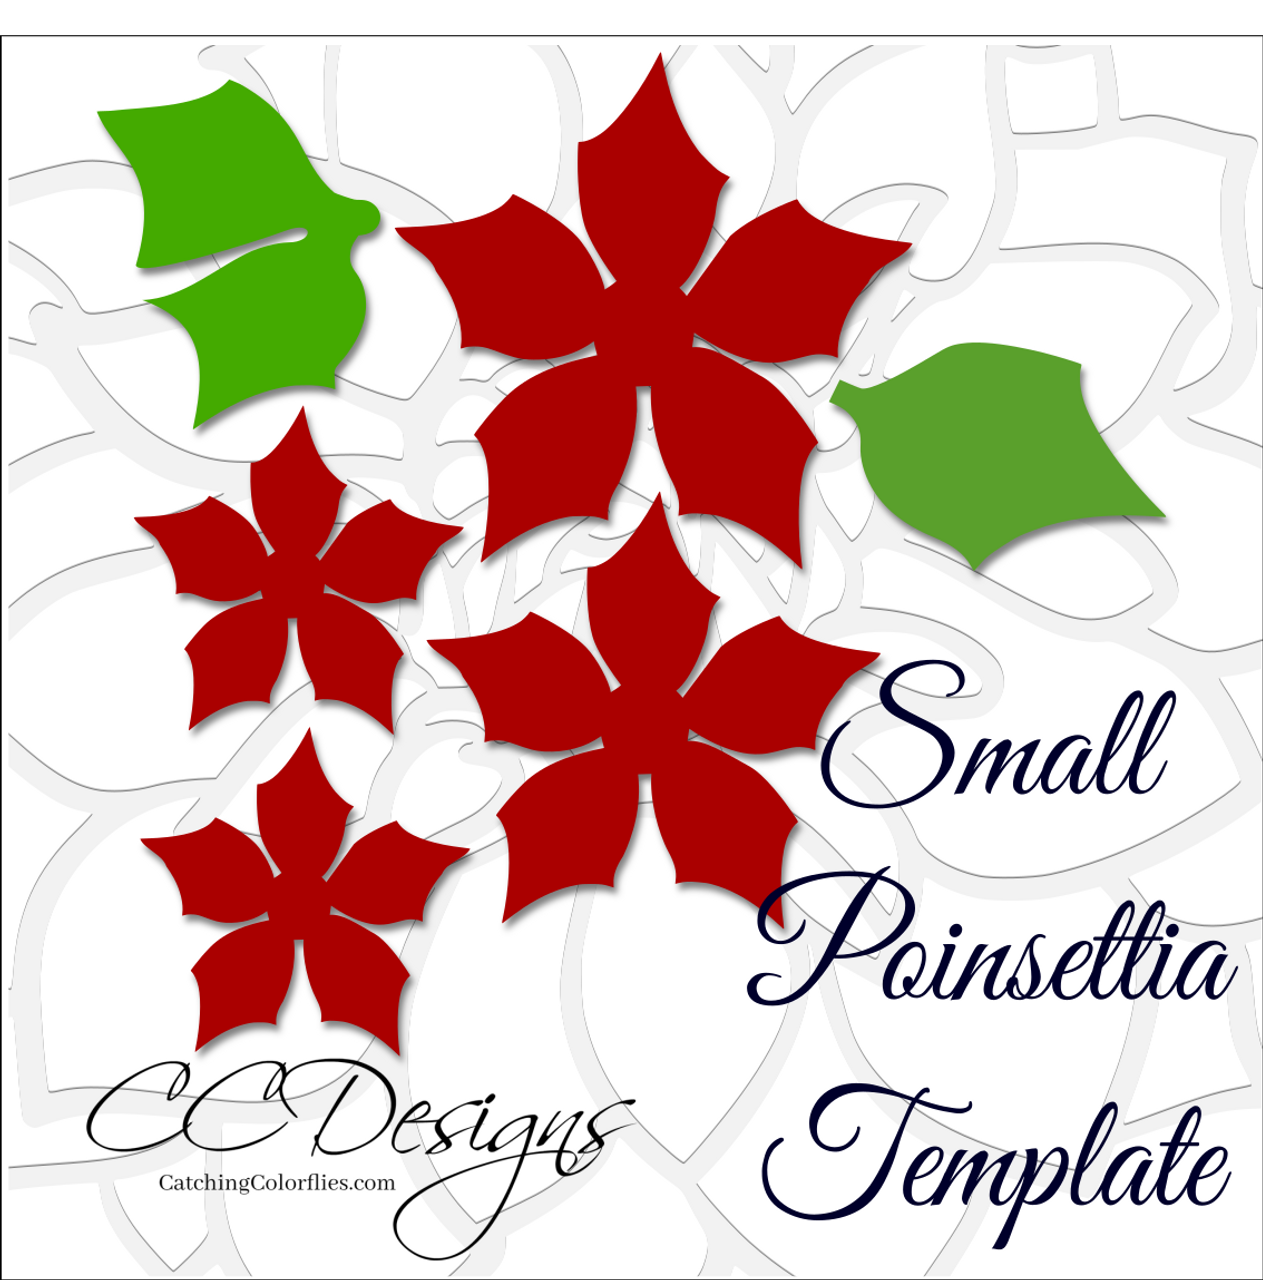 photograph relating to Poinsettia Pattern Printable referred to as Very little Poinsettia Paper Flower Do it yourself Template